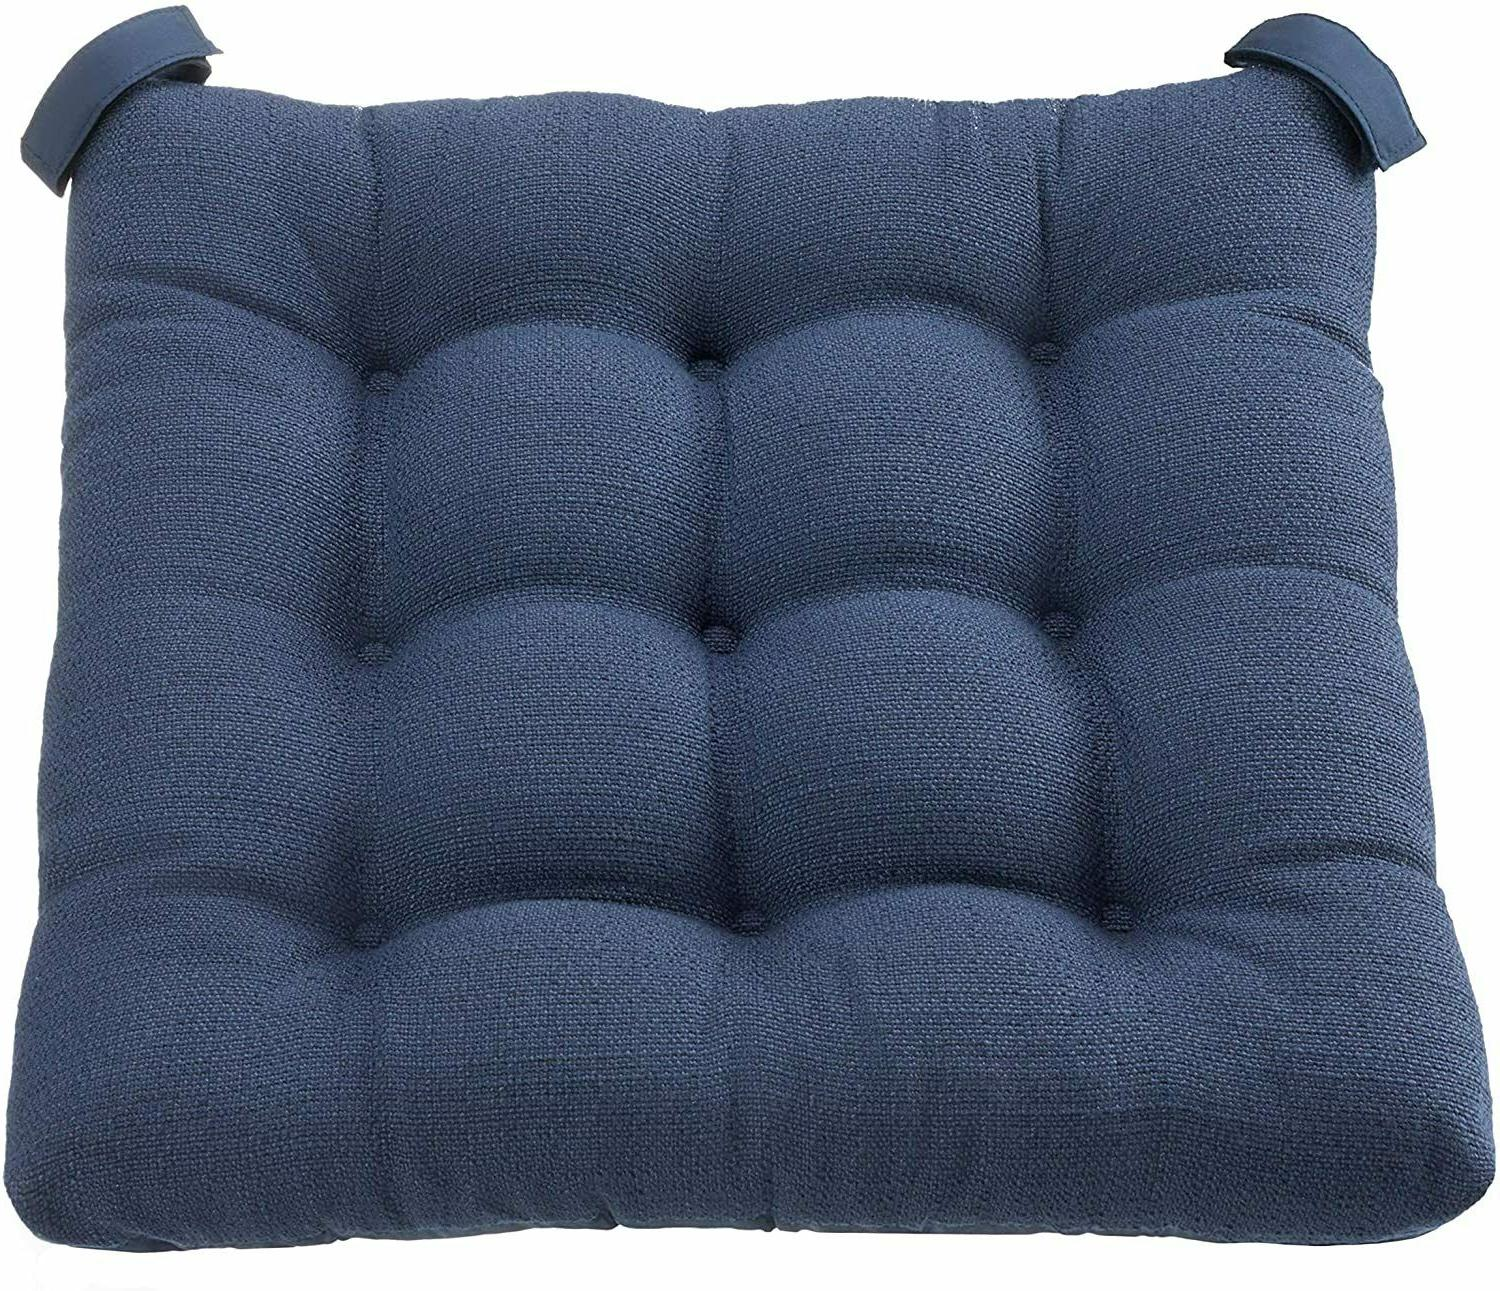 textured navy blue set of 4 chair